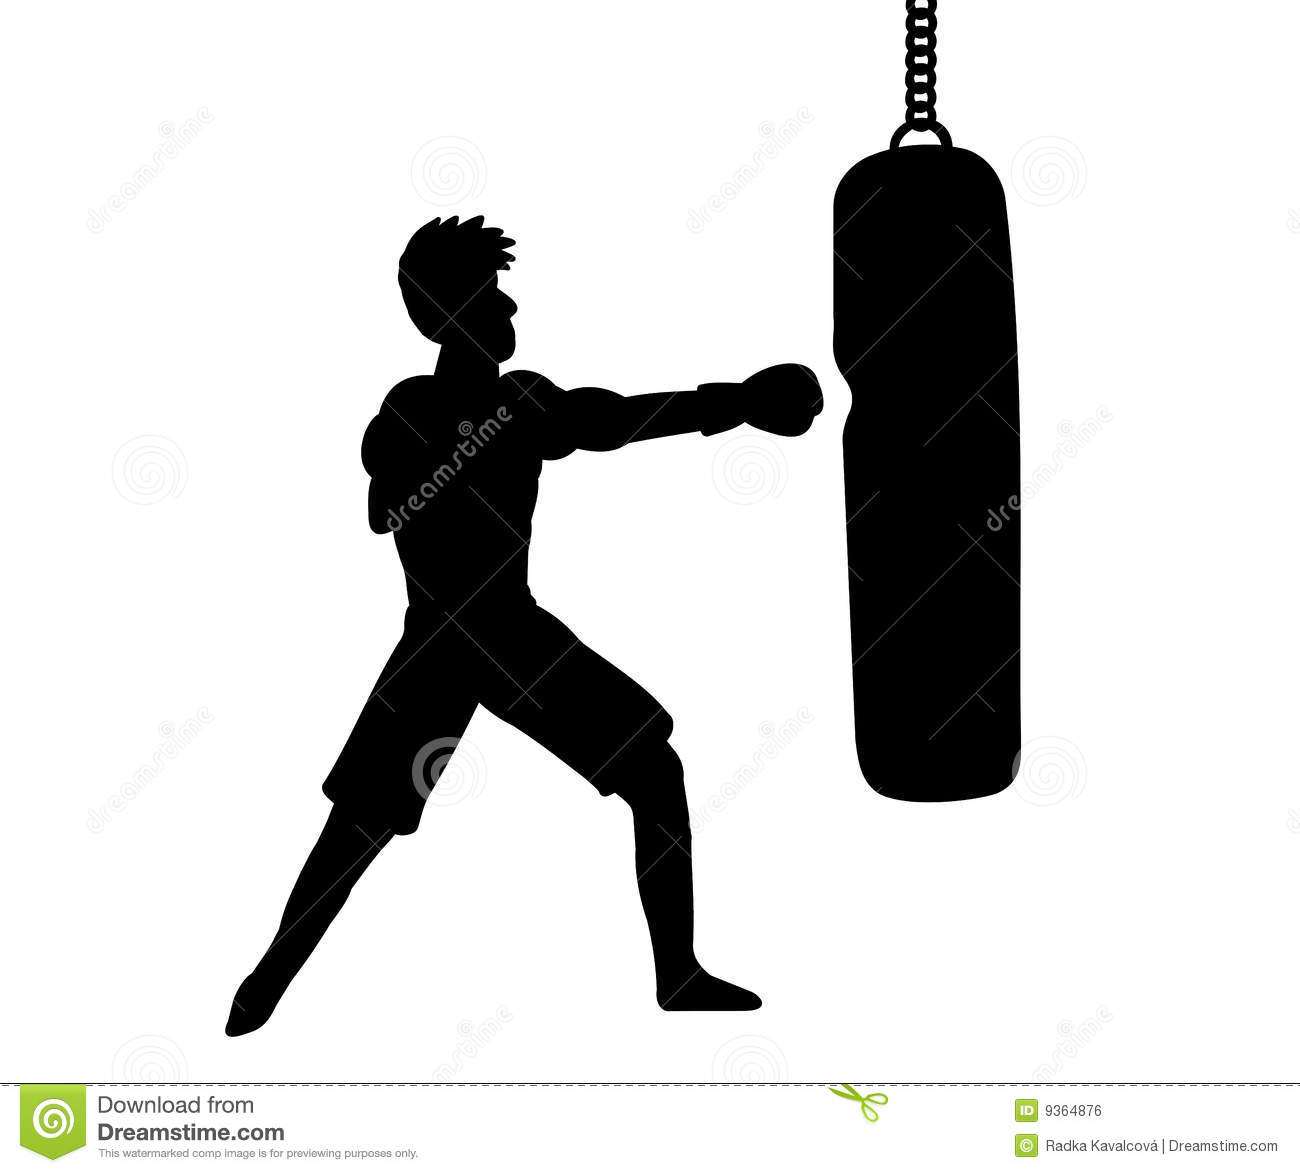 punching bag clipart - photo #38